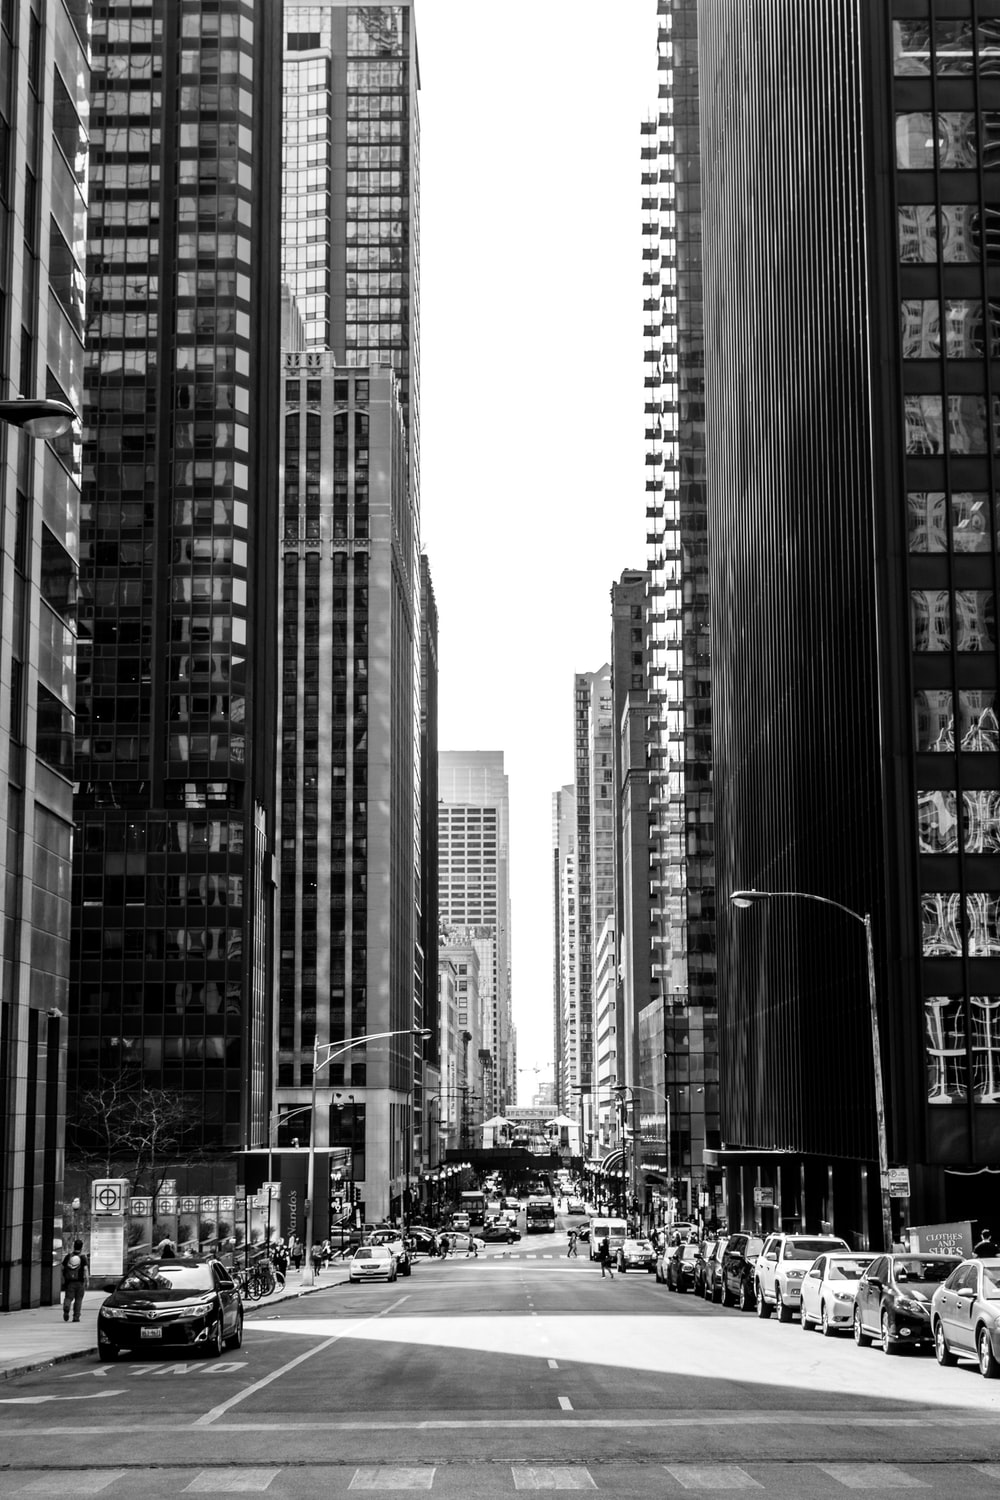 grayscale photo of road in between of tall buildings with vehicles